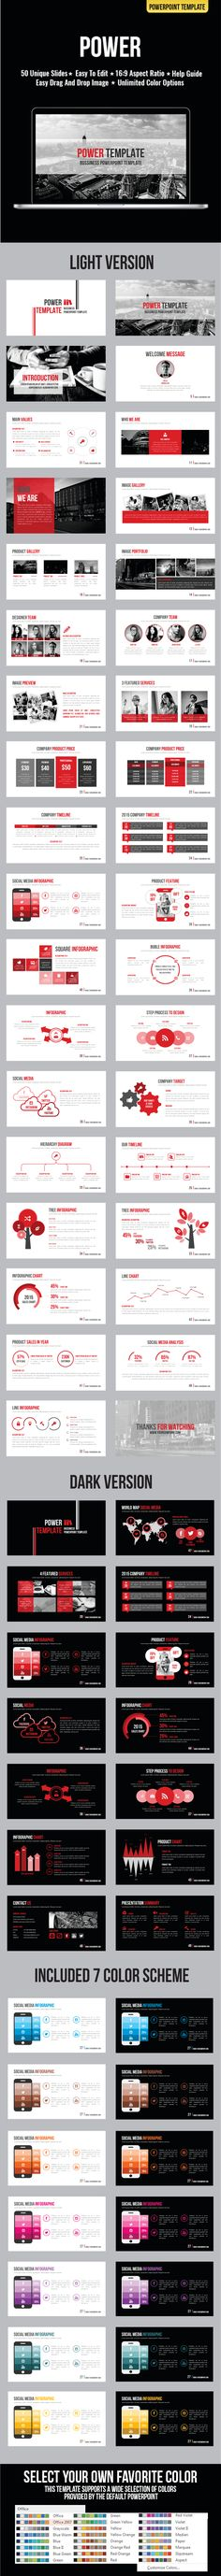 PowerPoint Template #design Download: http://graphicriver.net/item/power-template/12324281?ref=ksioks